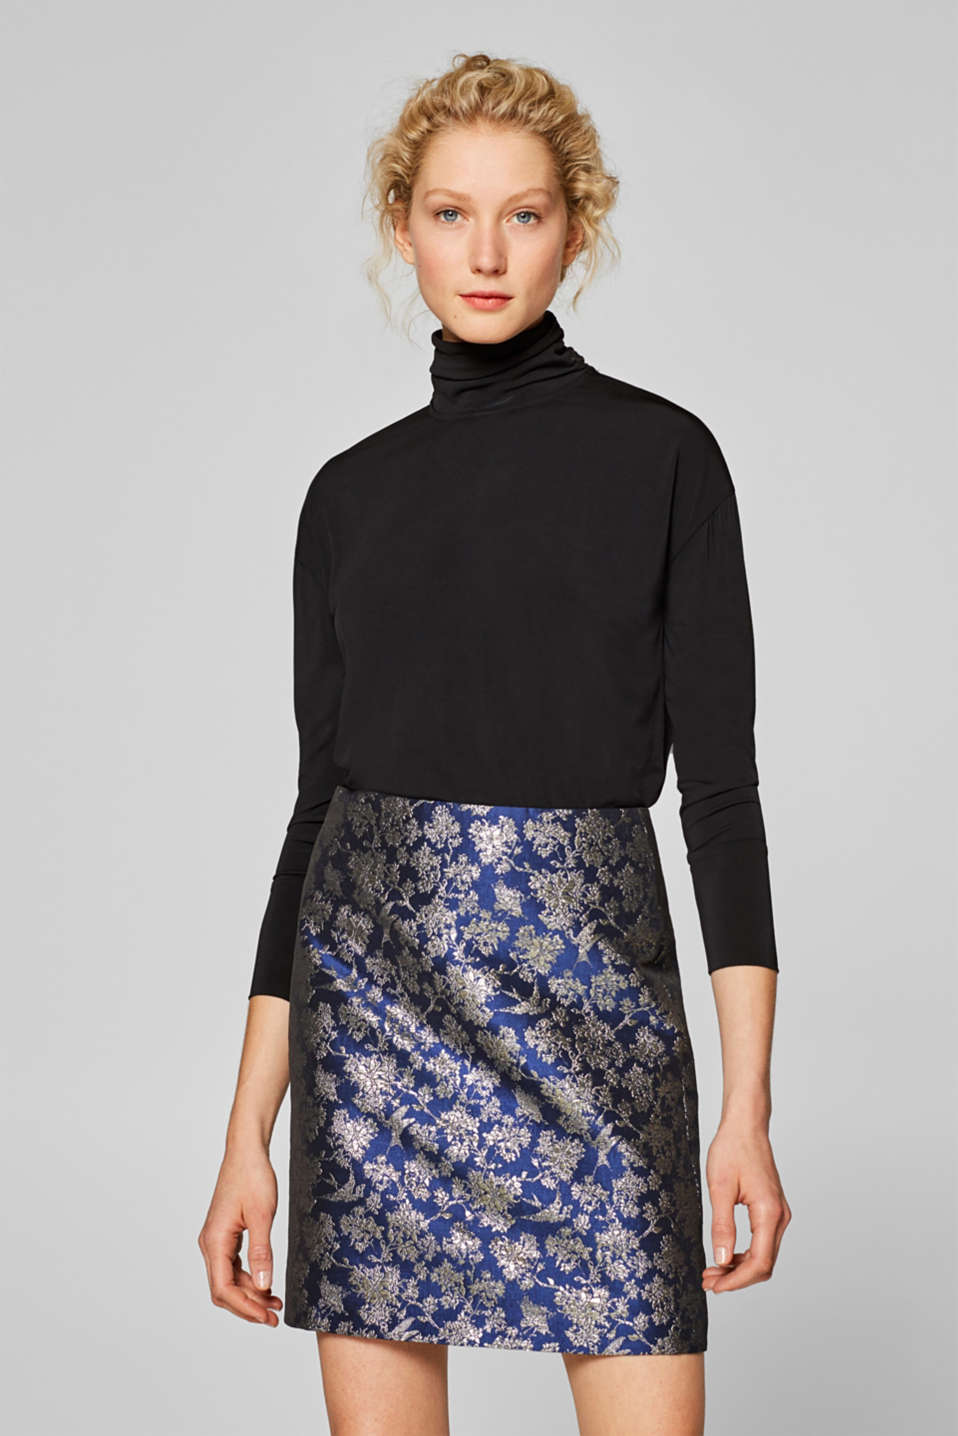 Esprit - Brocade skirt with floral pattern